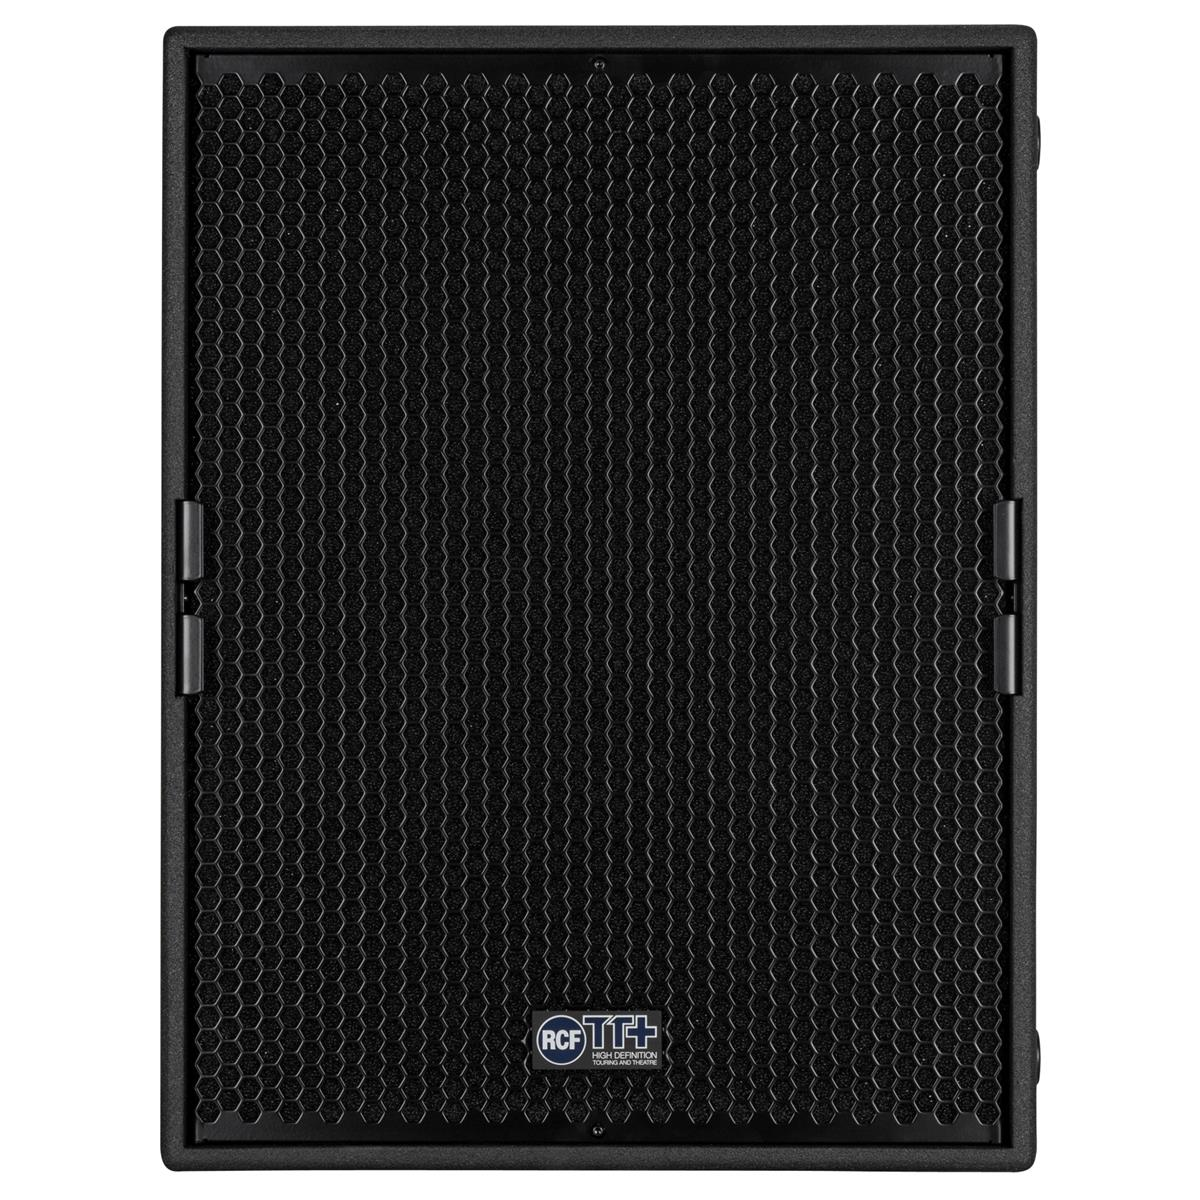 RCF 1400 W RMS, 18in active high power subwoofer